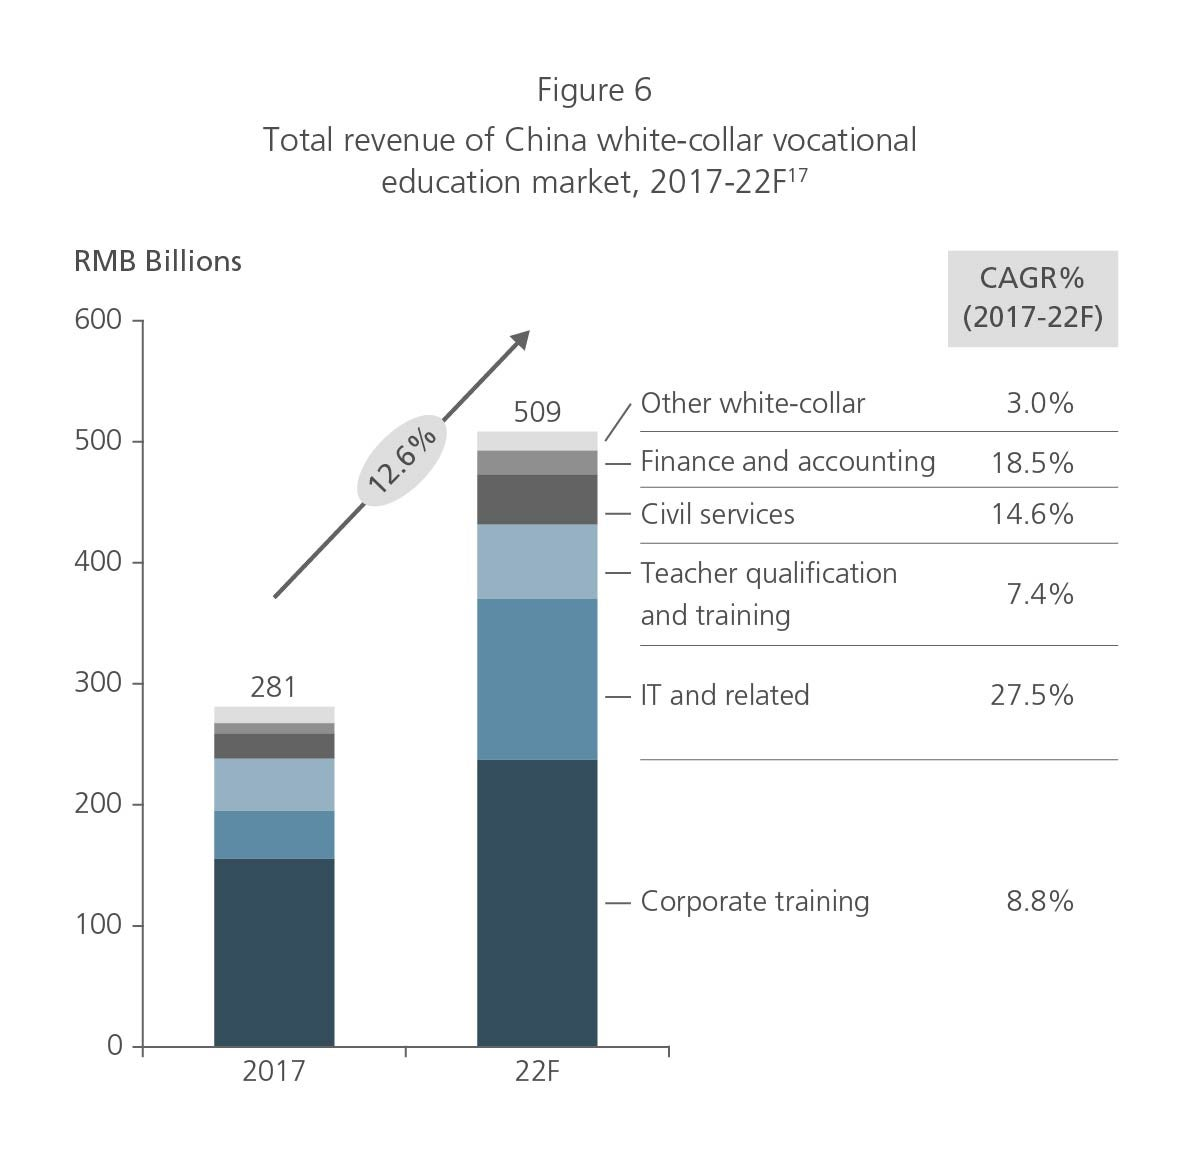 Total revenue of China white-collar vocational education market 2017-22F